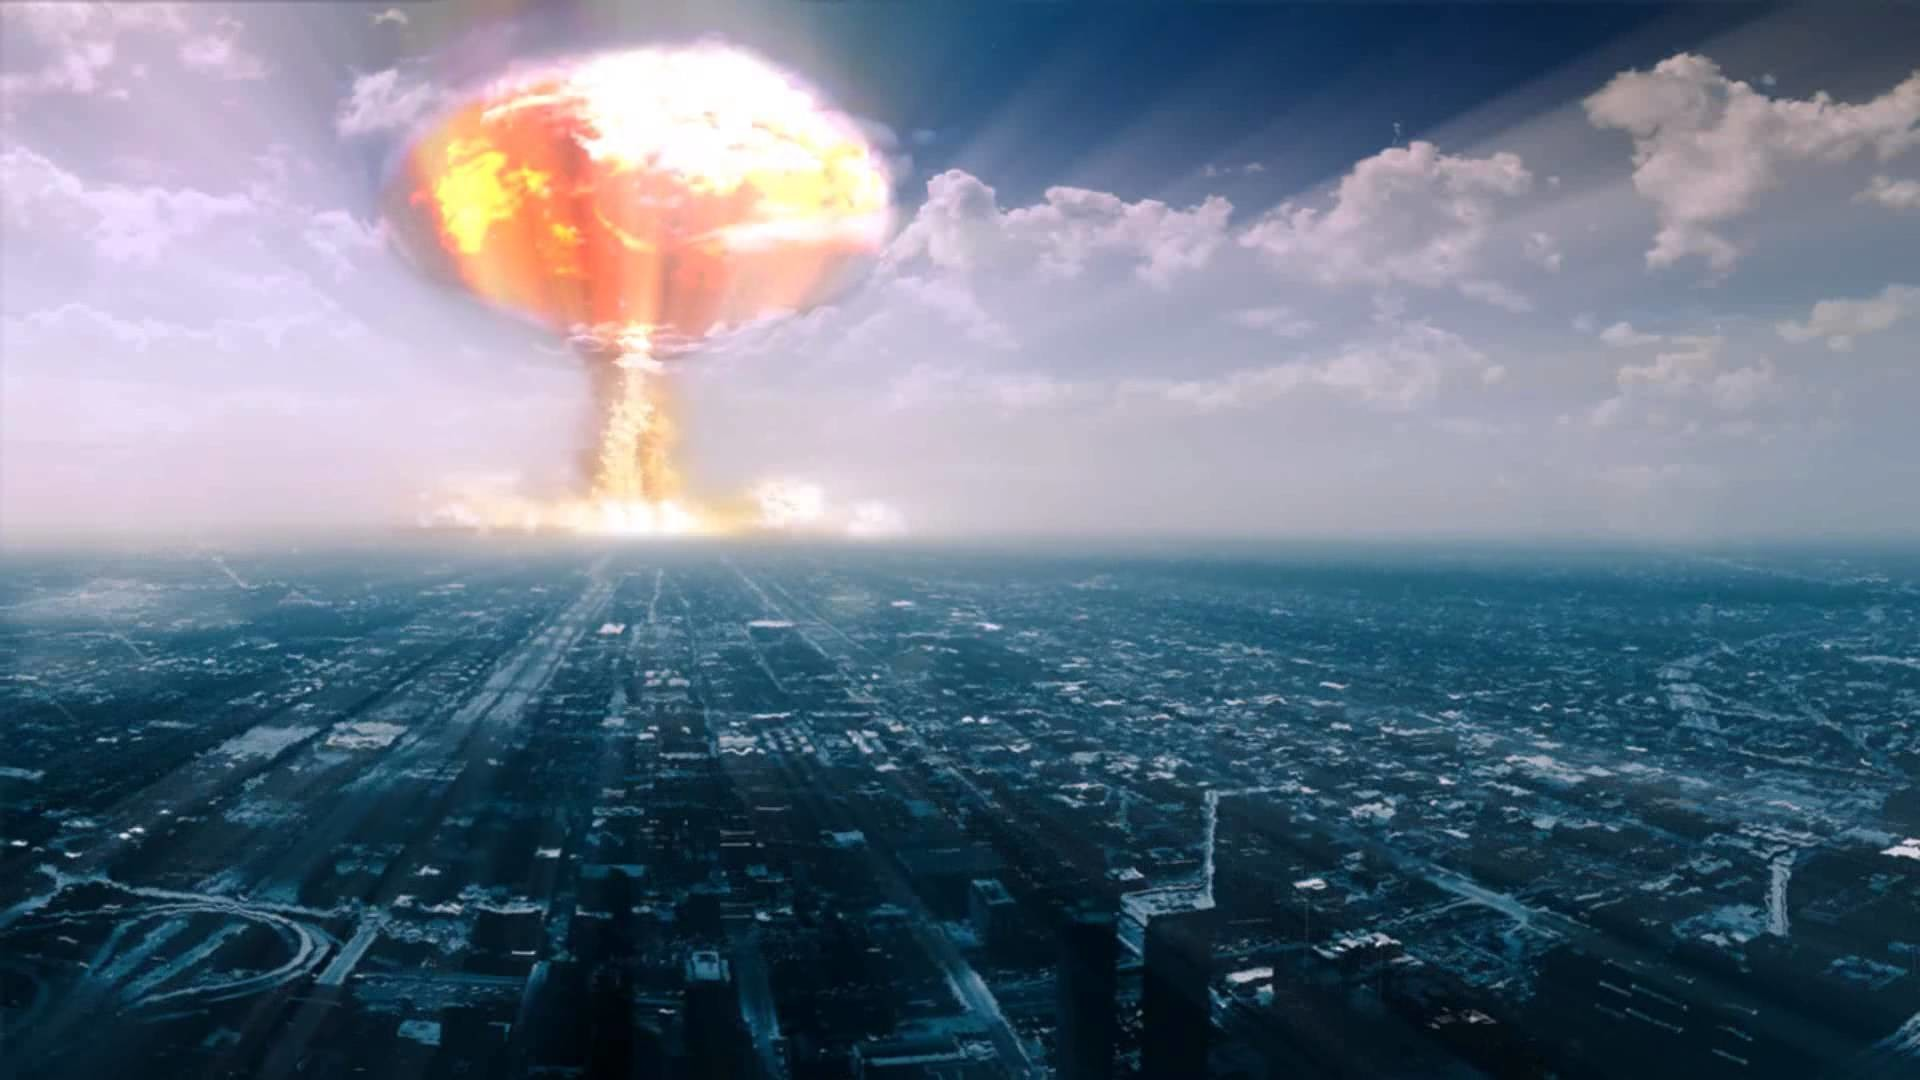 1920x1080 Hand Mushroom Cloud Blast Explosion Miniature dark nuclear. Nuclear  Wallpaper Image Collection